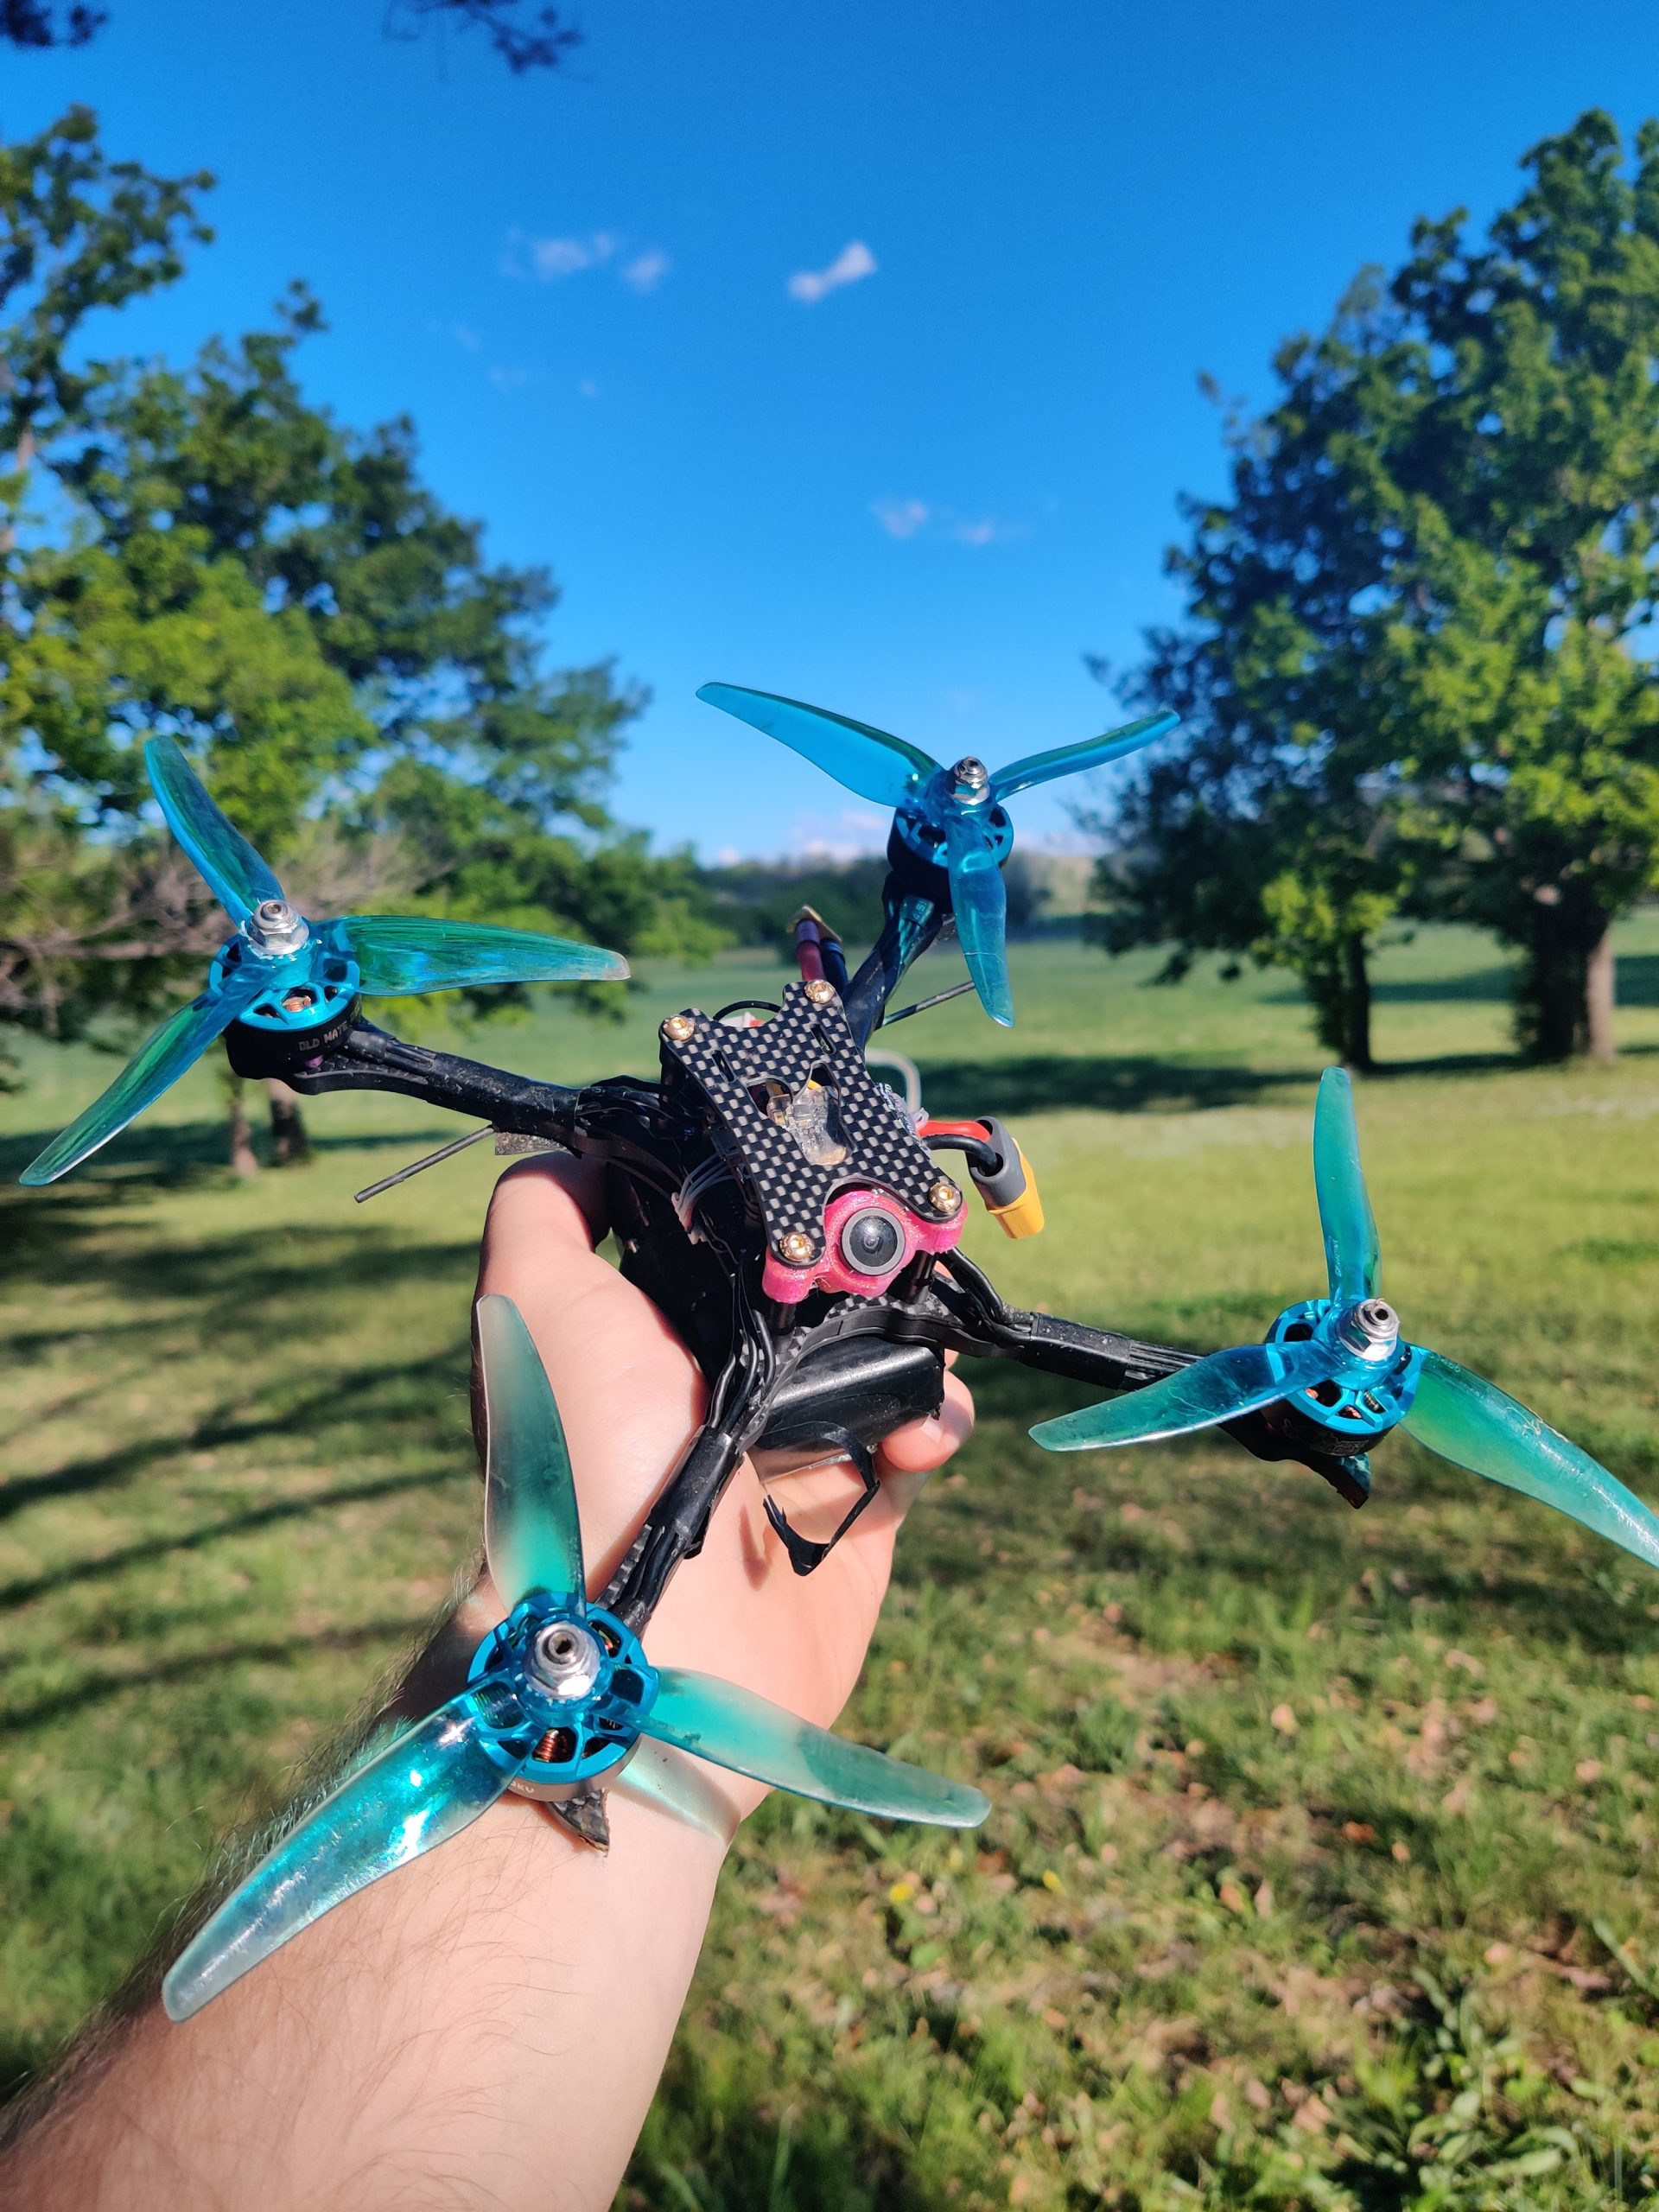 A close-up of an FPV racing drone